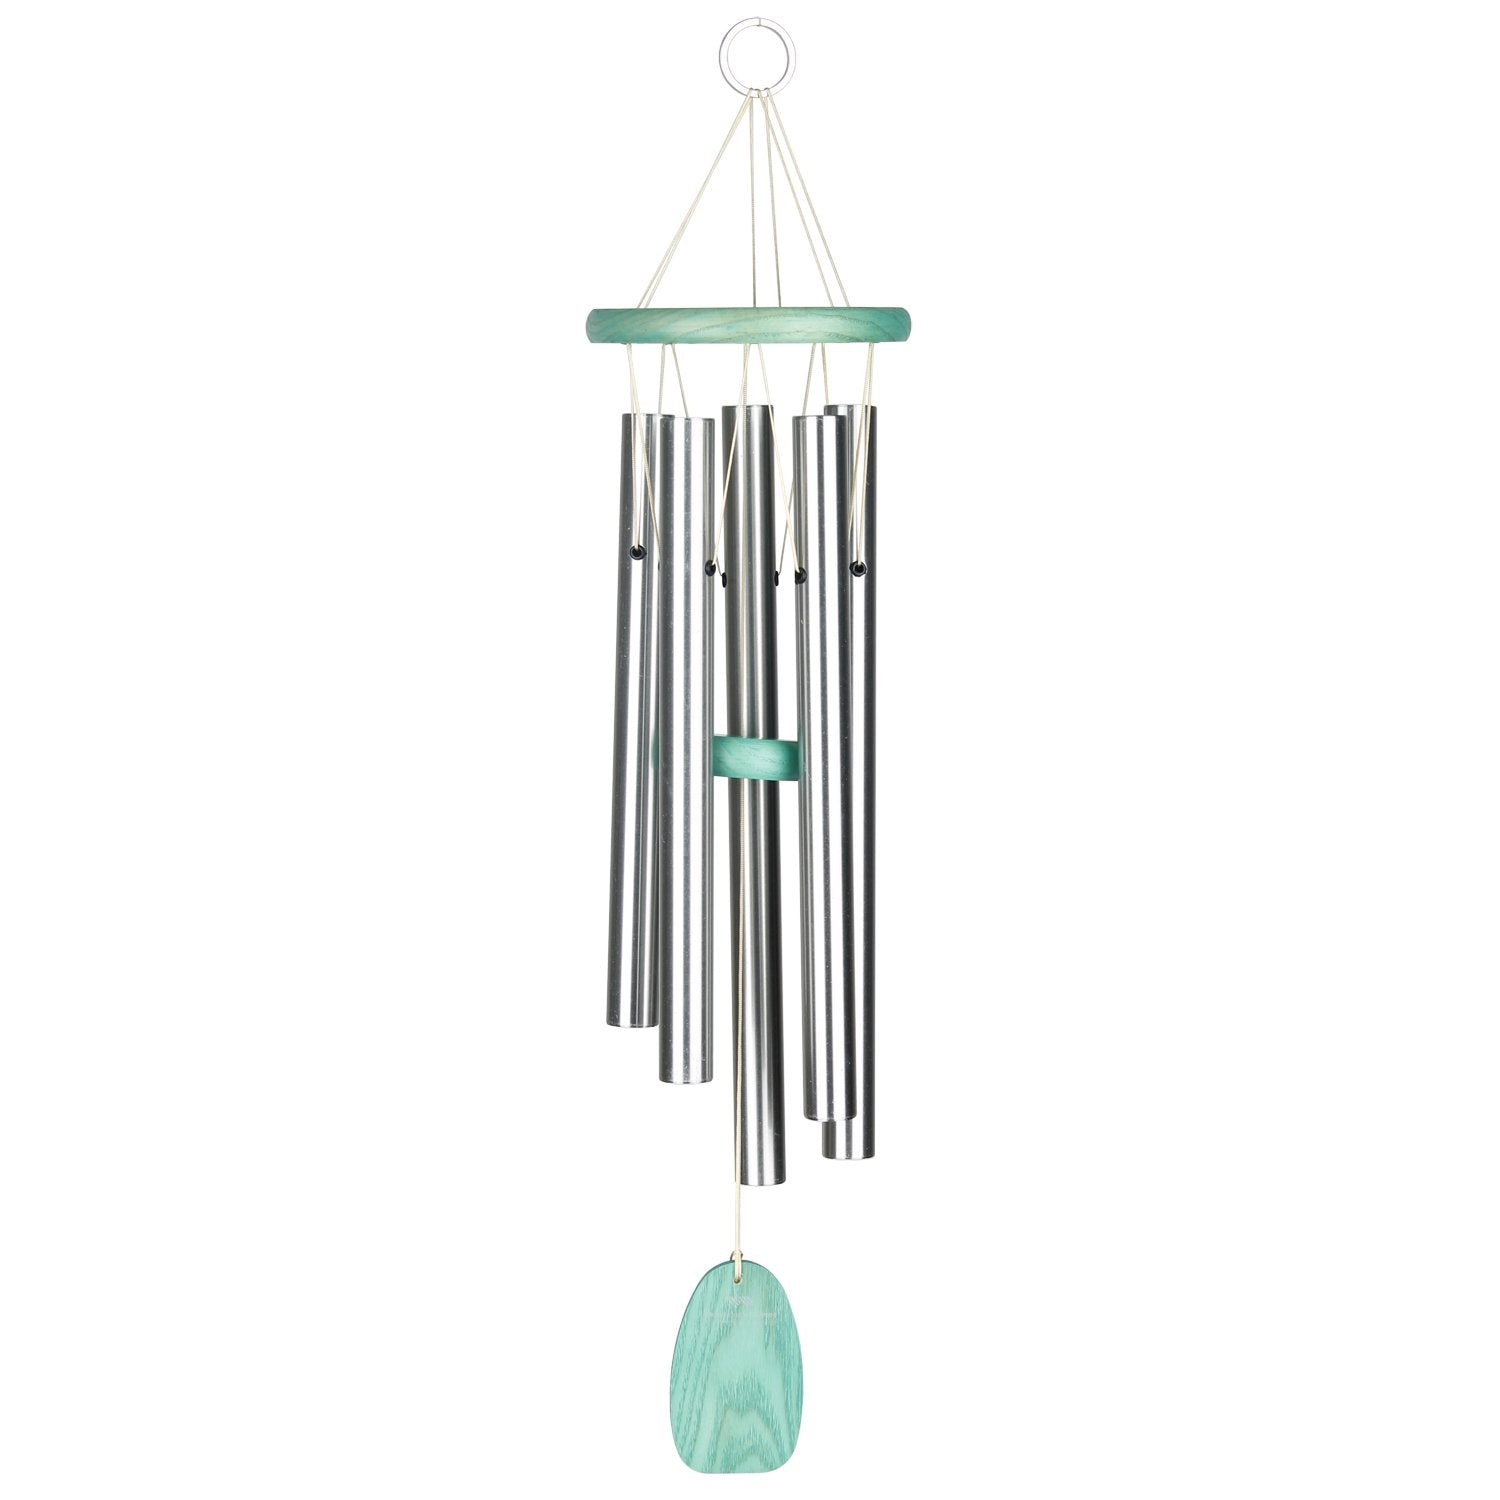 Beachcomber Chime - Gracious Green full product image